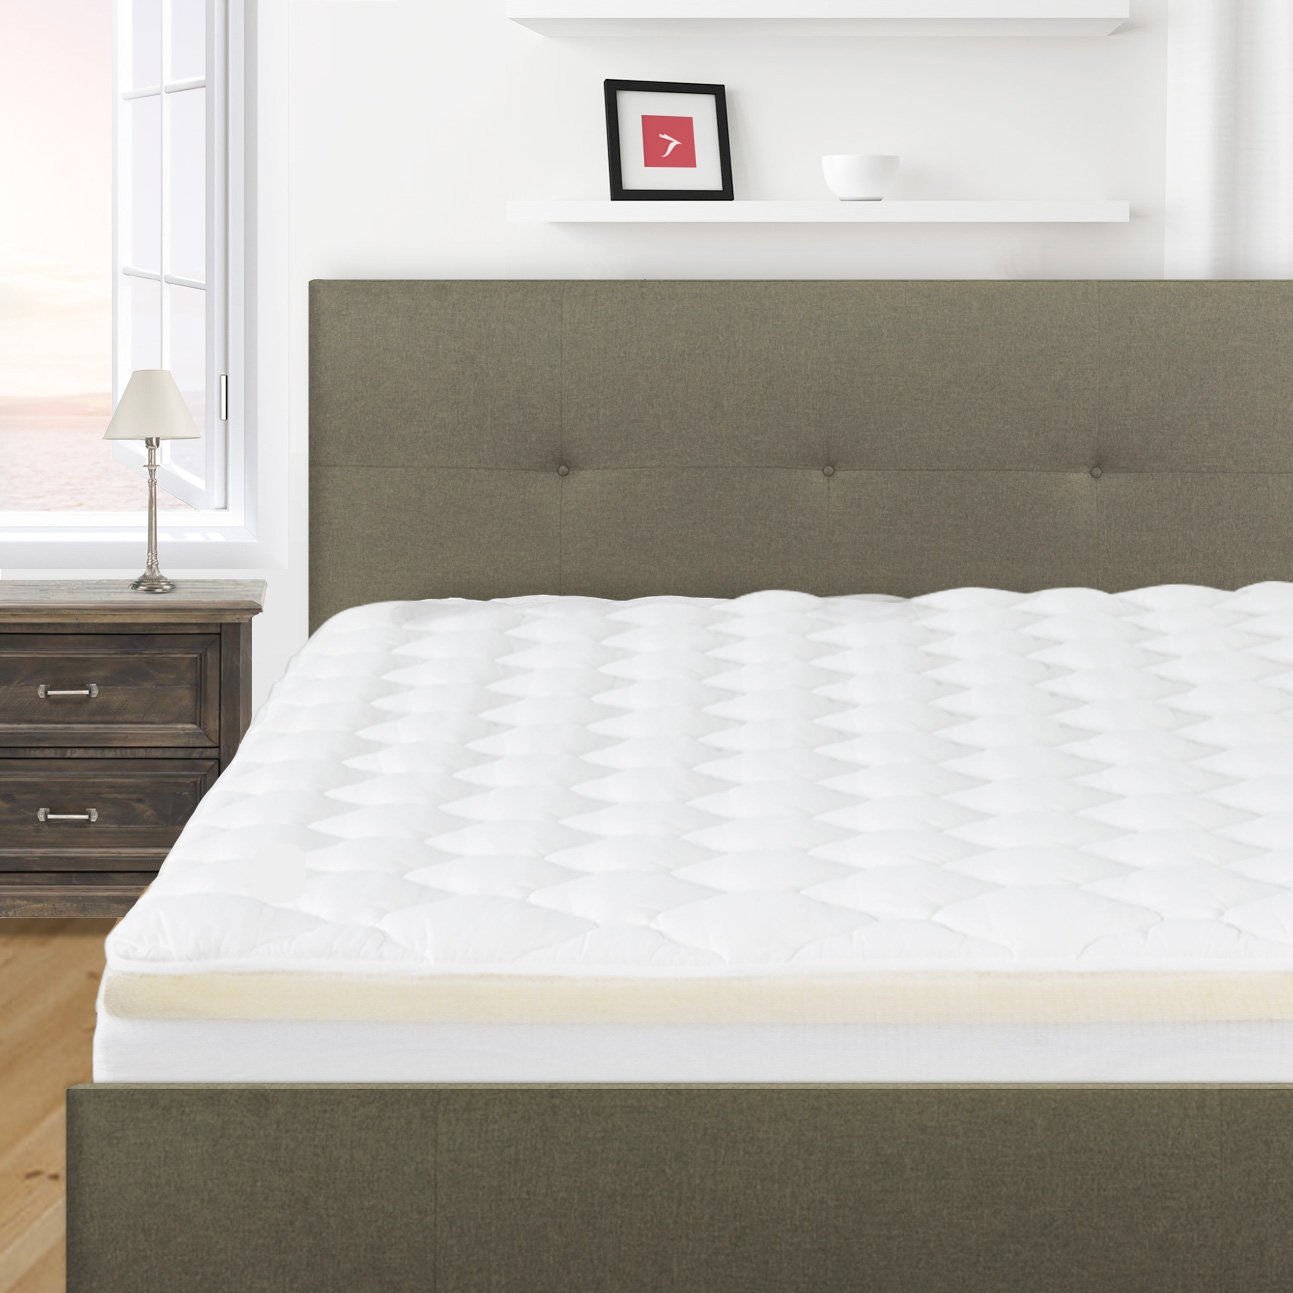 Overfilled and Double Thick Pillow Top Mattress Pad, California King